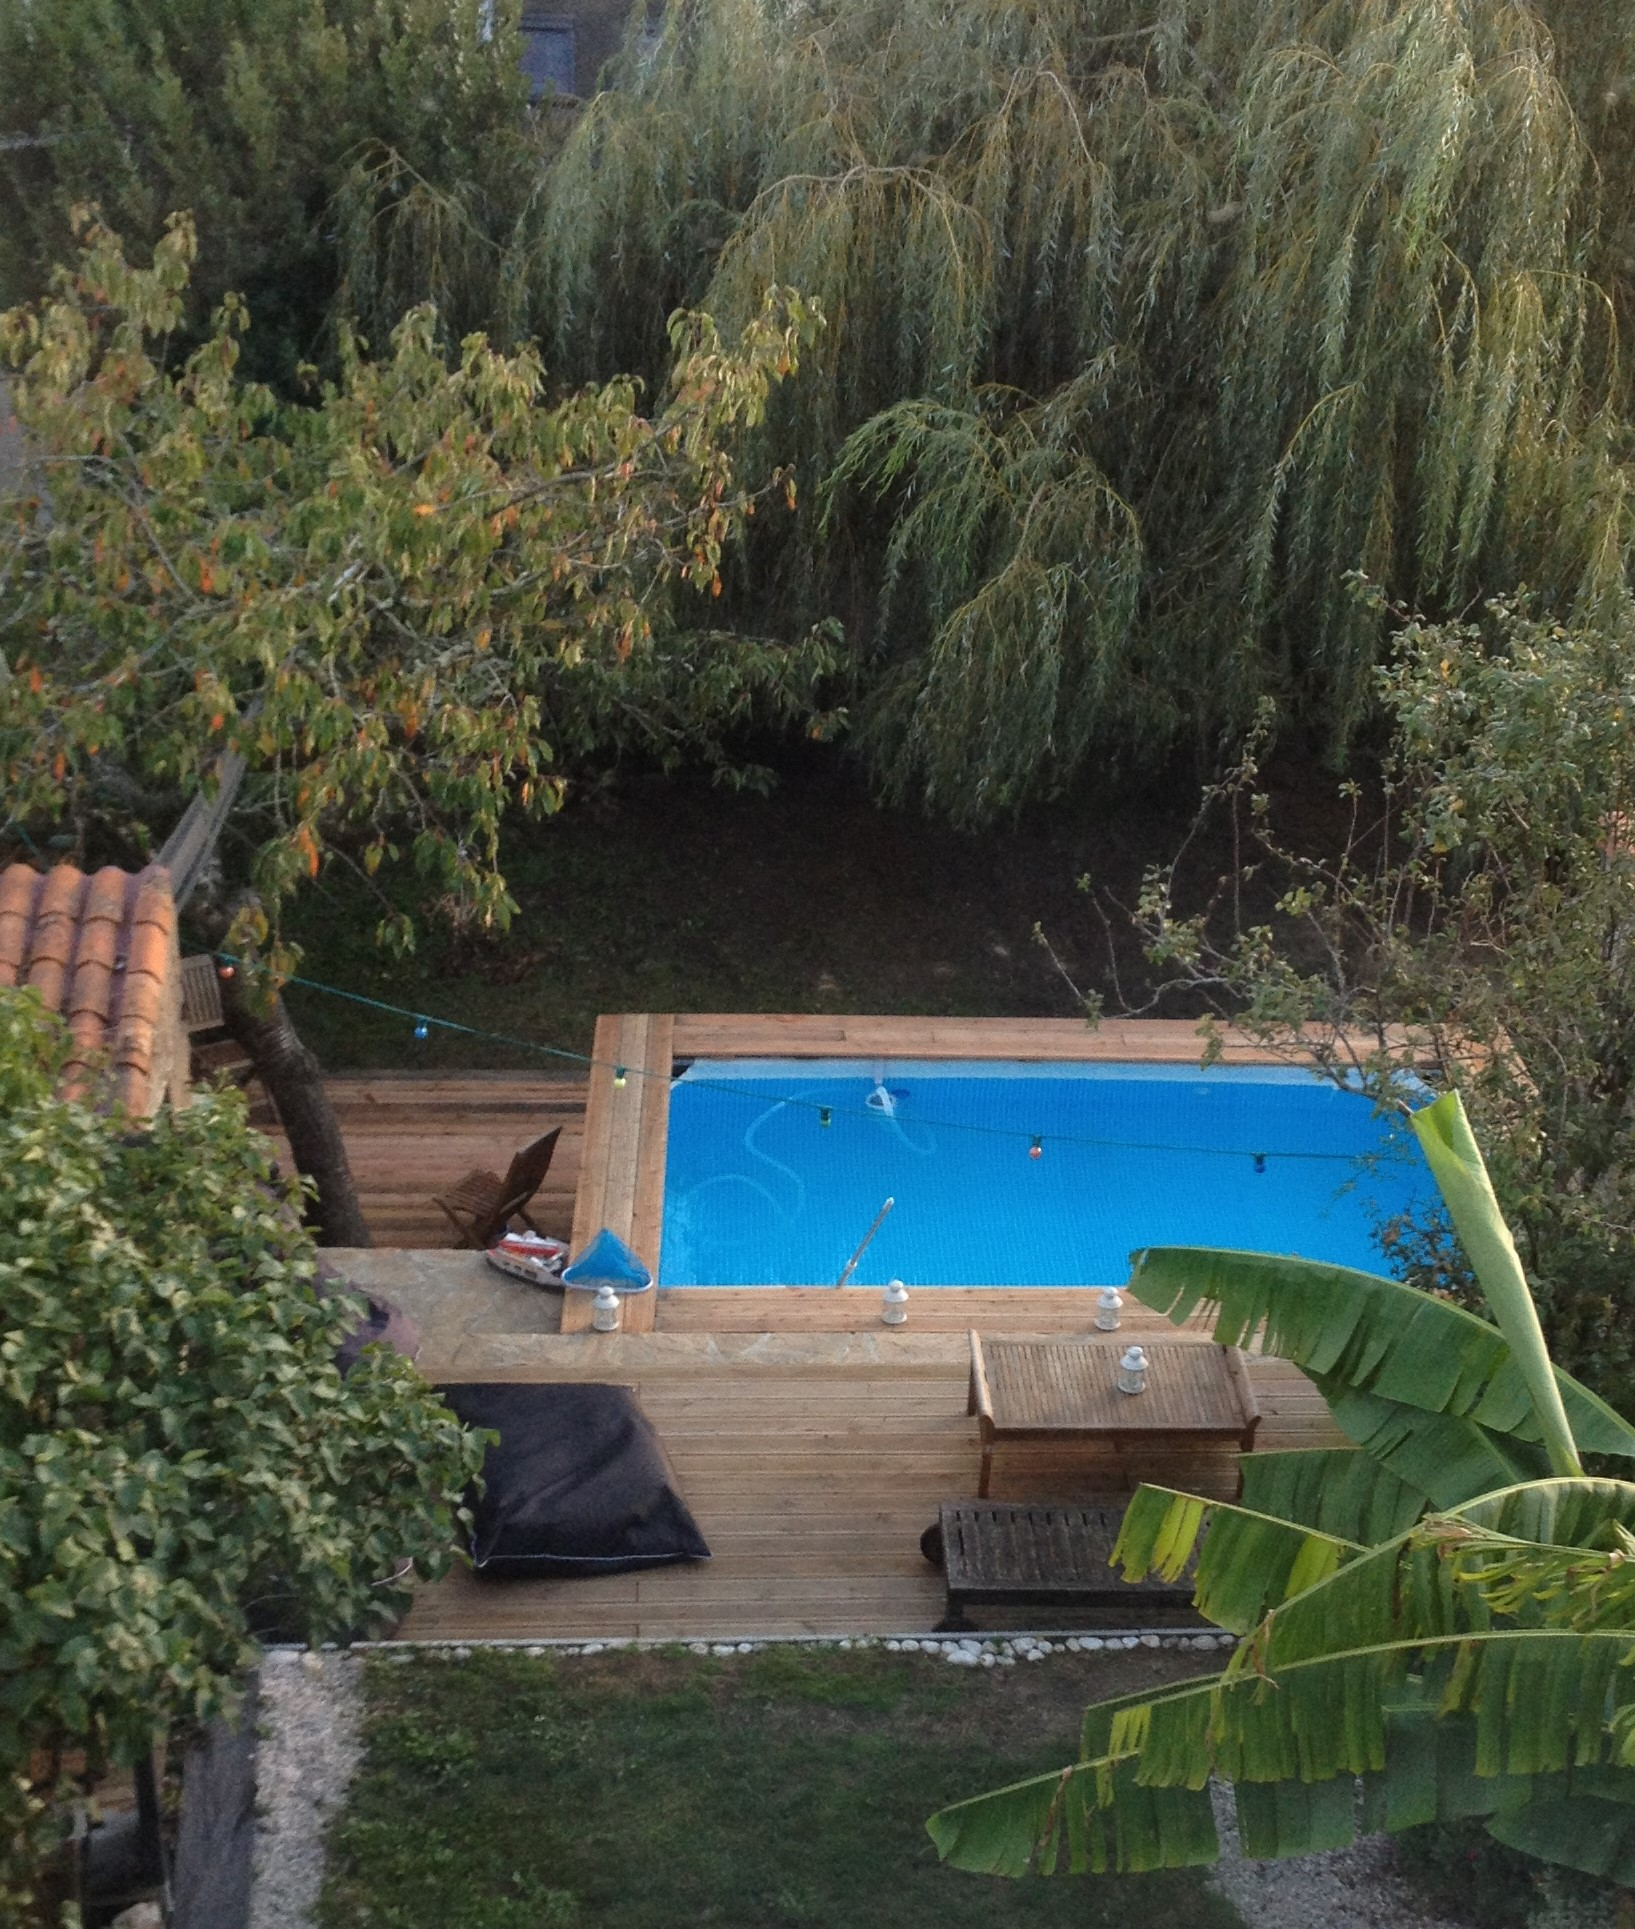 Comment encastrer sa piscine hors sol blog de raviday - Habillage piscine hors sol intex ...